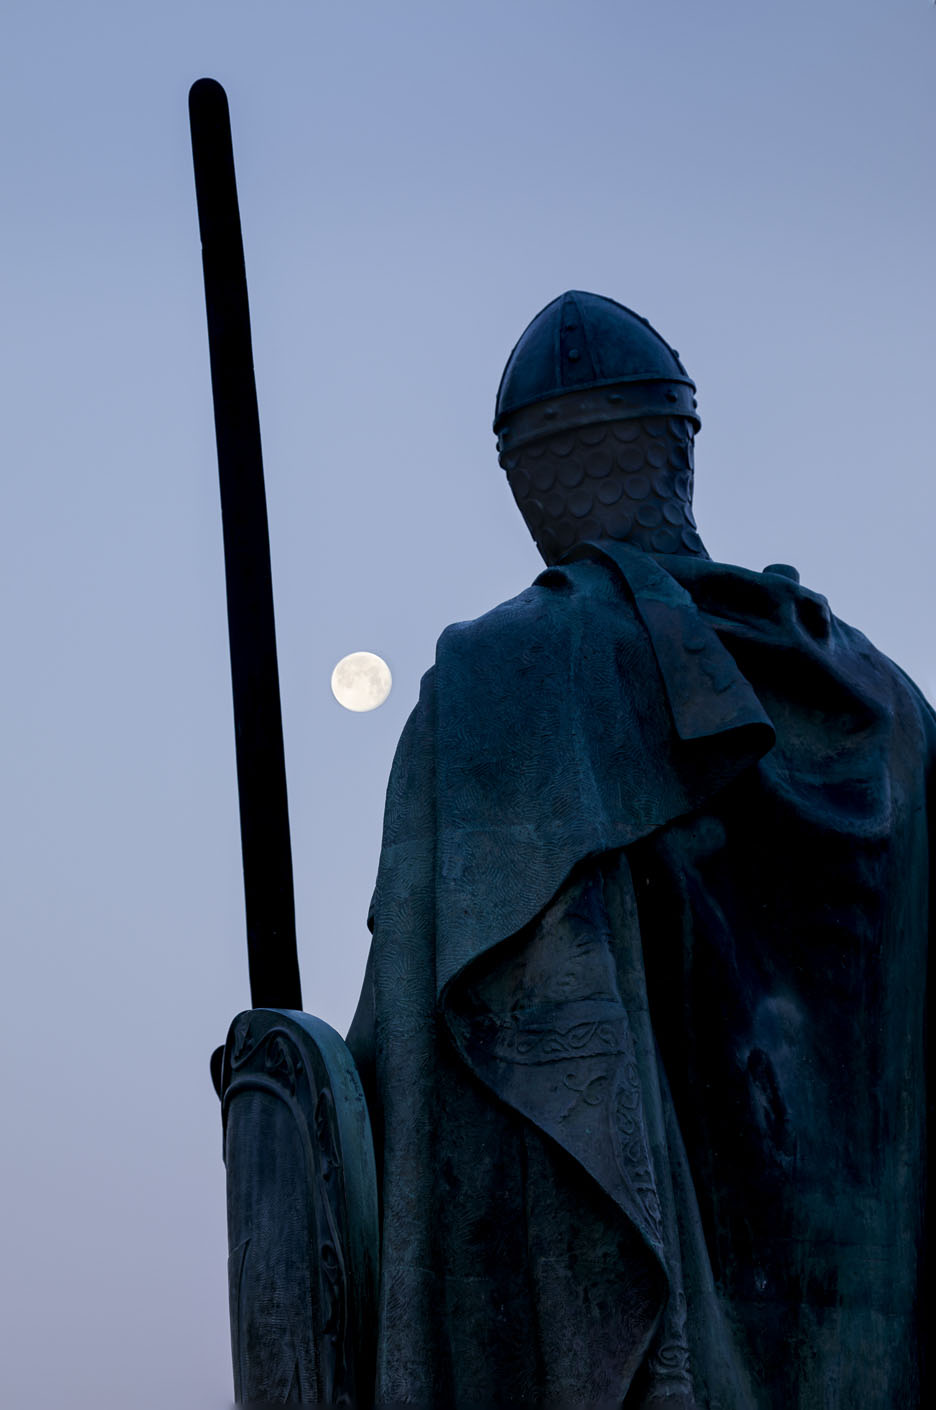 The full moon and statue of King Afonso I in front of the Castle, Guimarães, Braga, Portugal